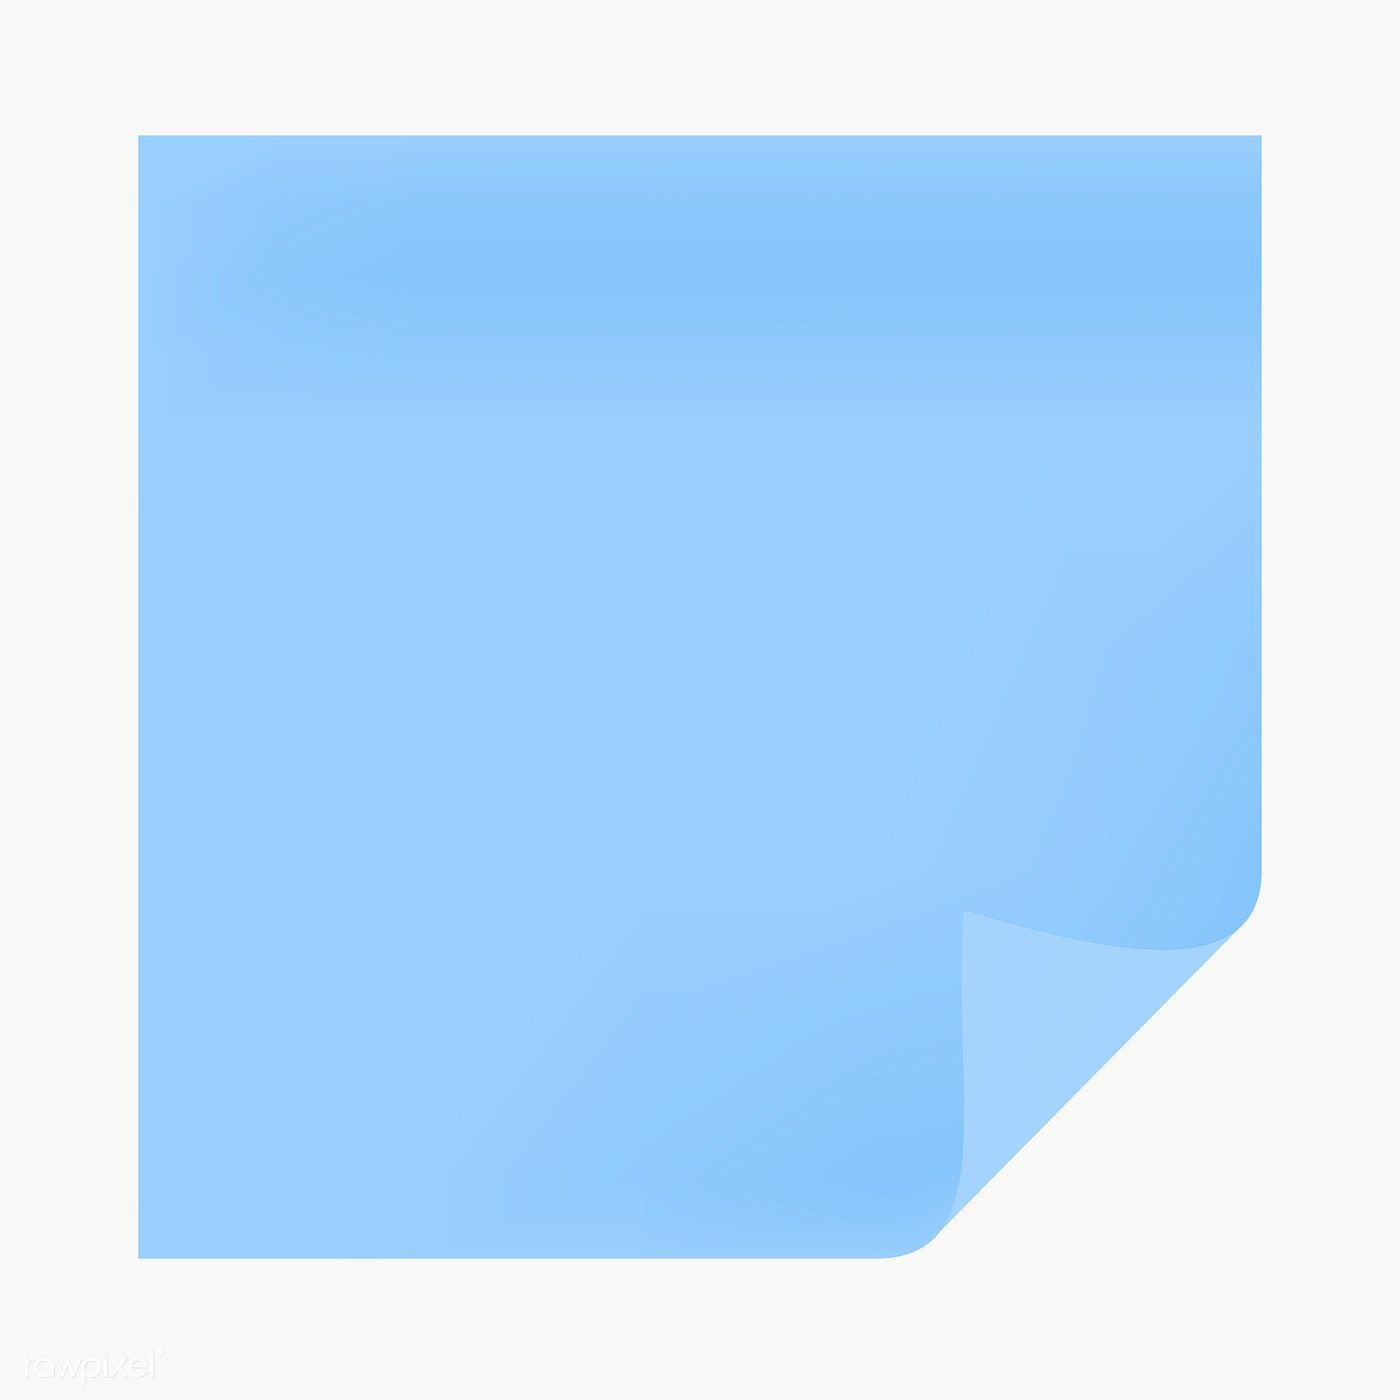 Blue Square Paper Note Social Ads Template Transparent Png Free Image By Rawpixel Com Manotang Note Paper Memo Paper Square Paper